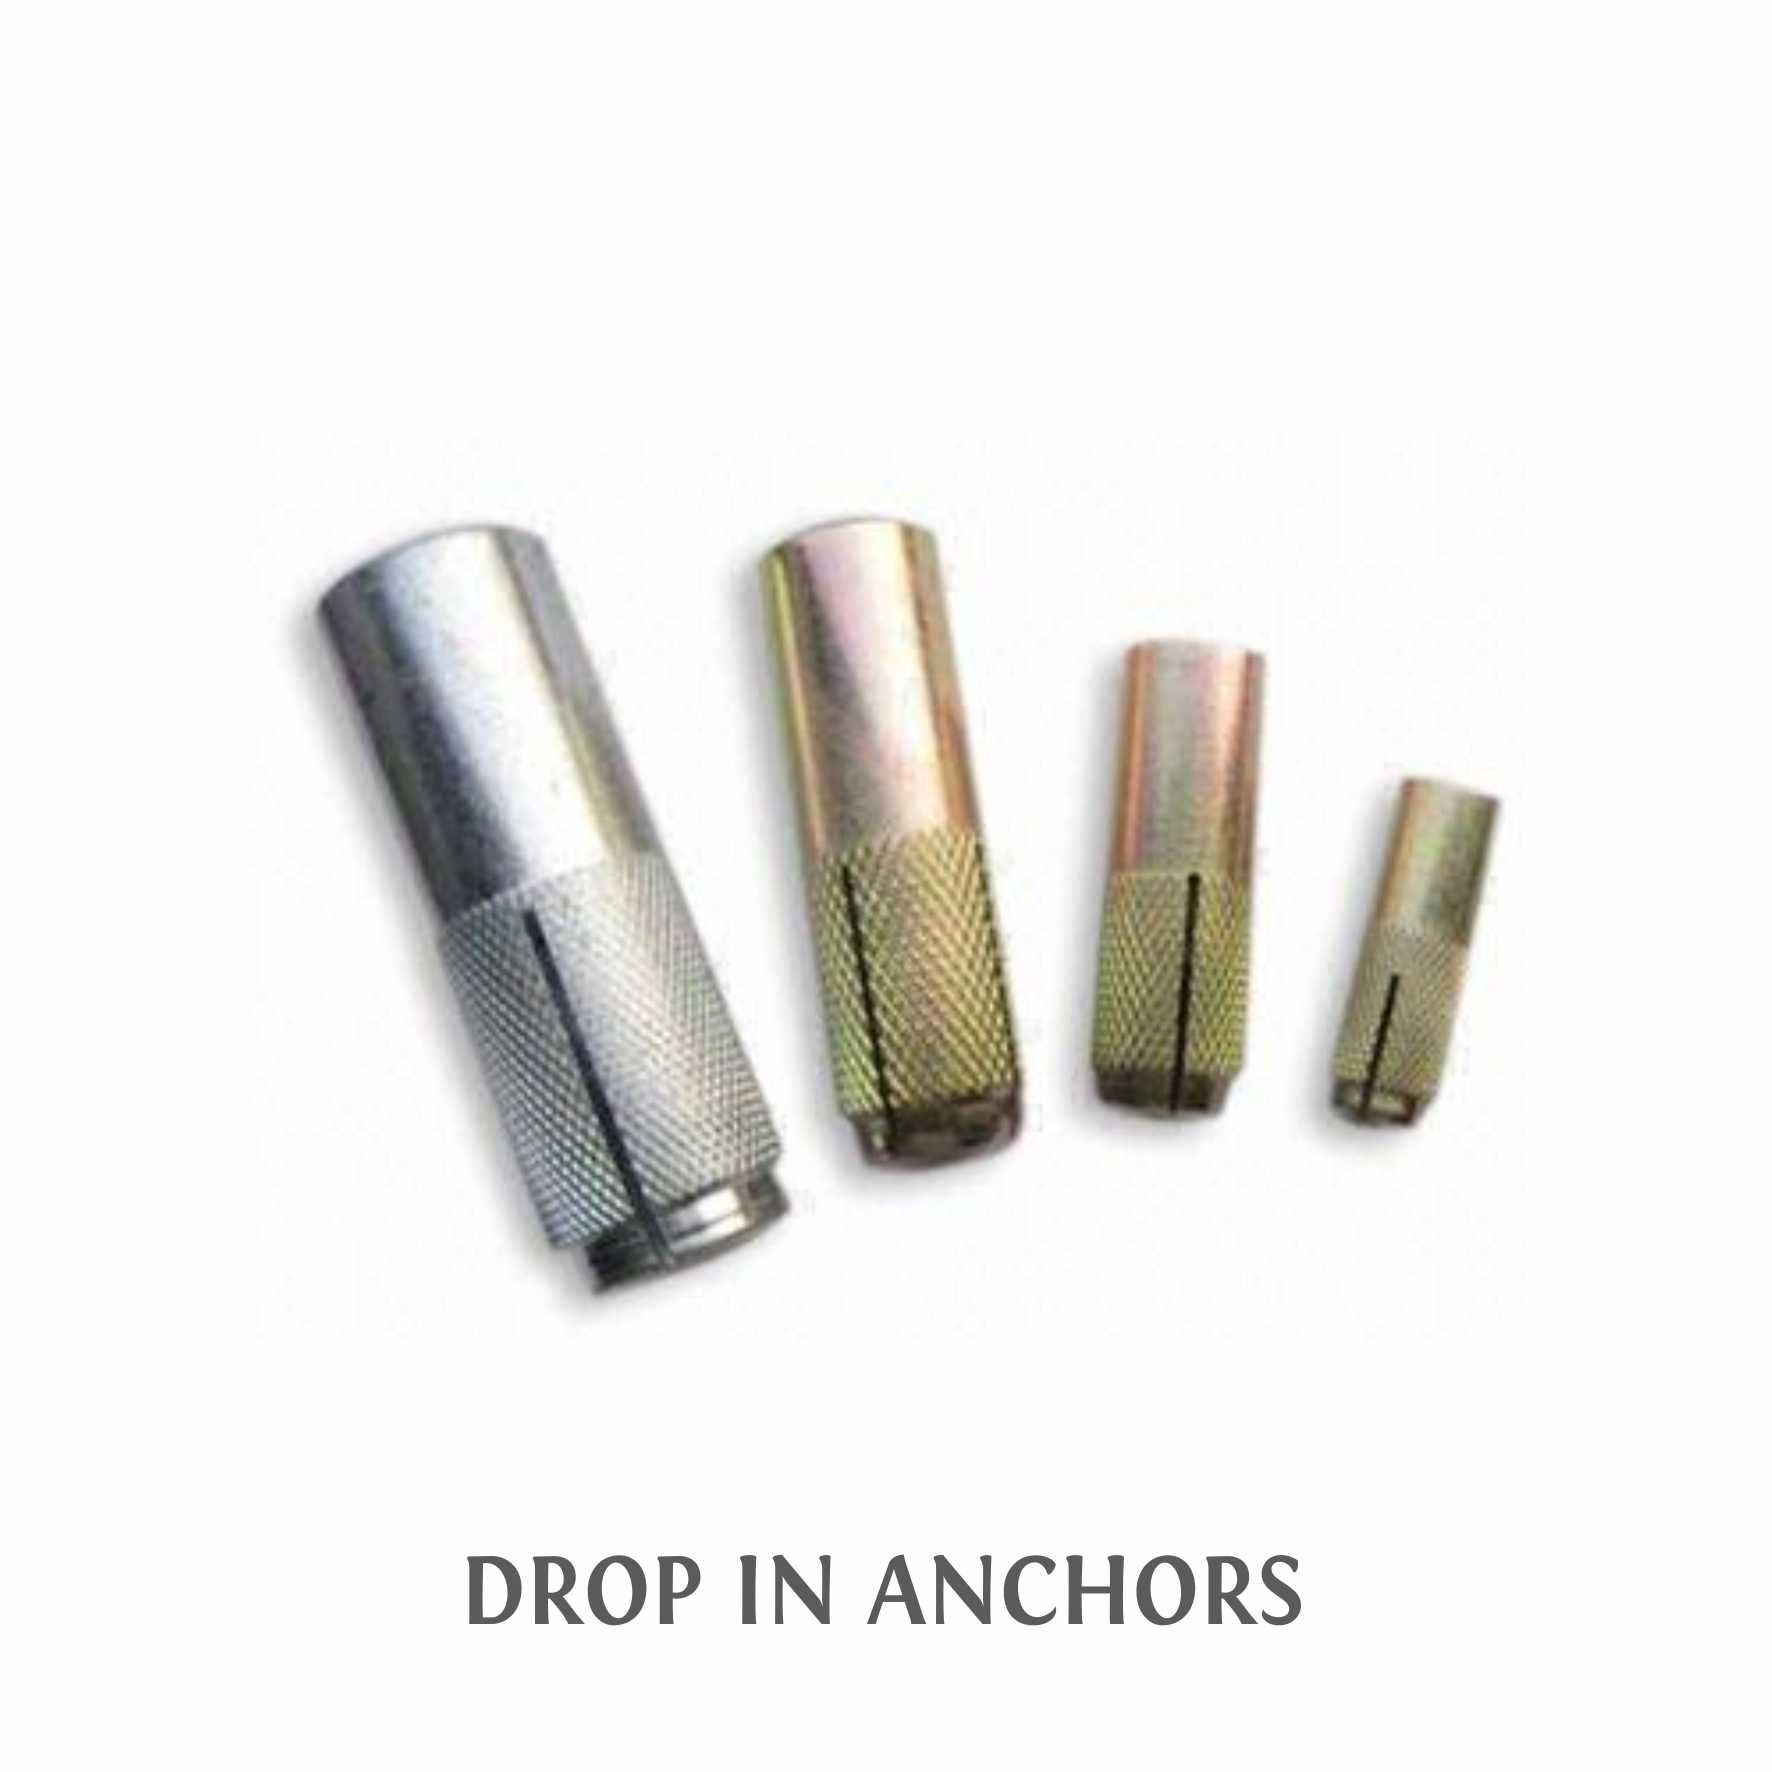 3-DROP IN ANCHORS